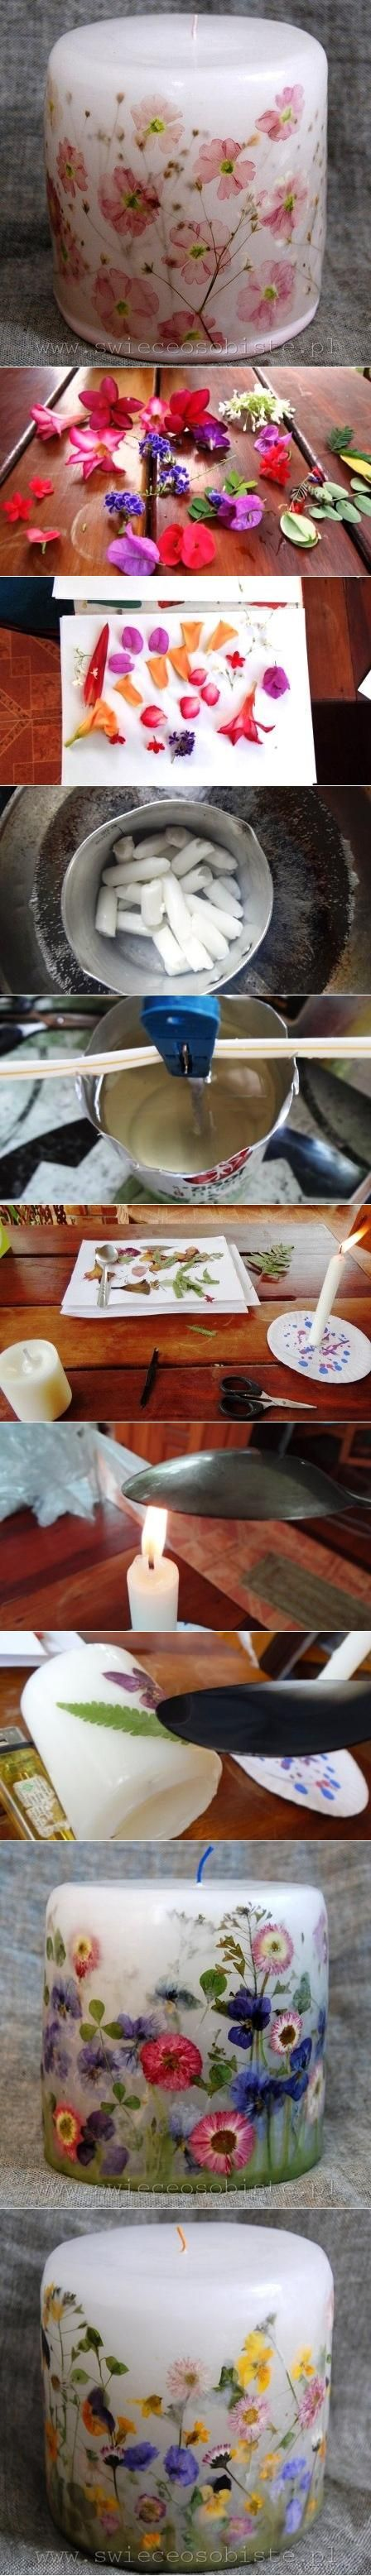 Diy Flower Candle - wonder if you can buy a cheap candle and just press flowers into it? It would be a lot cheaper than purchasing it from a store...